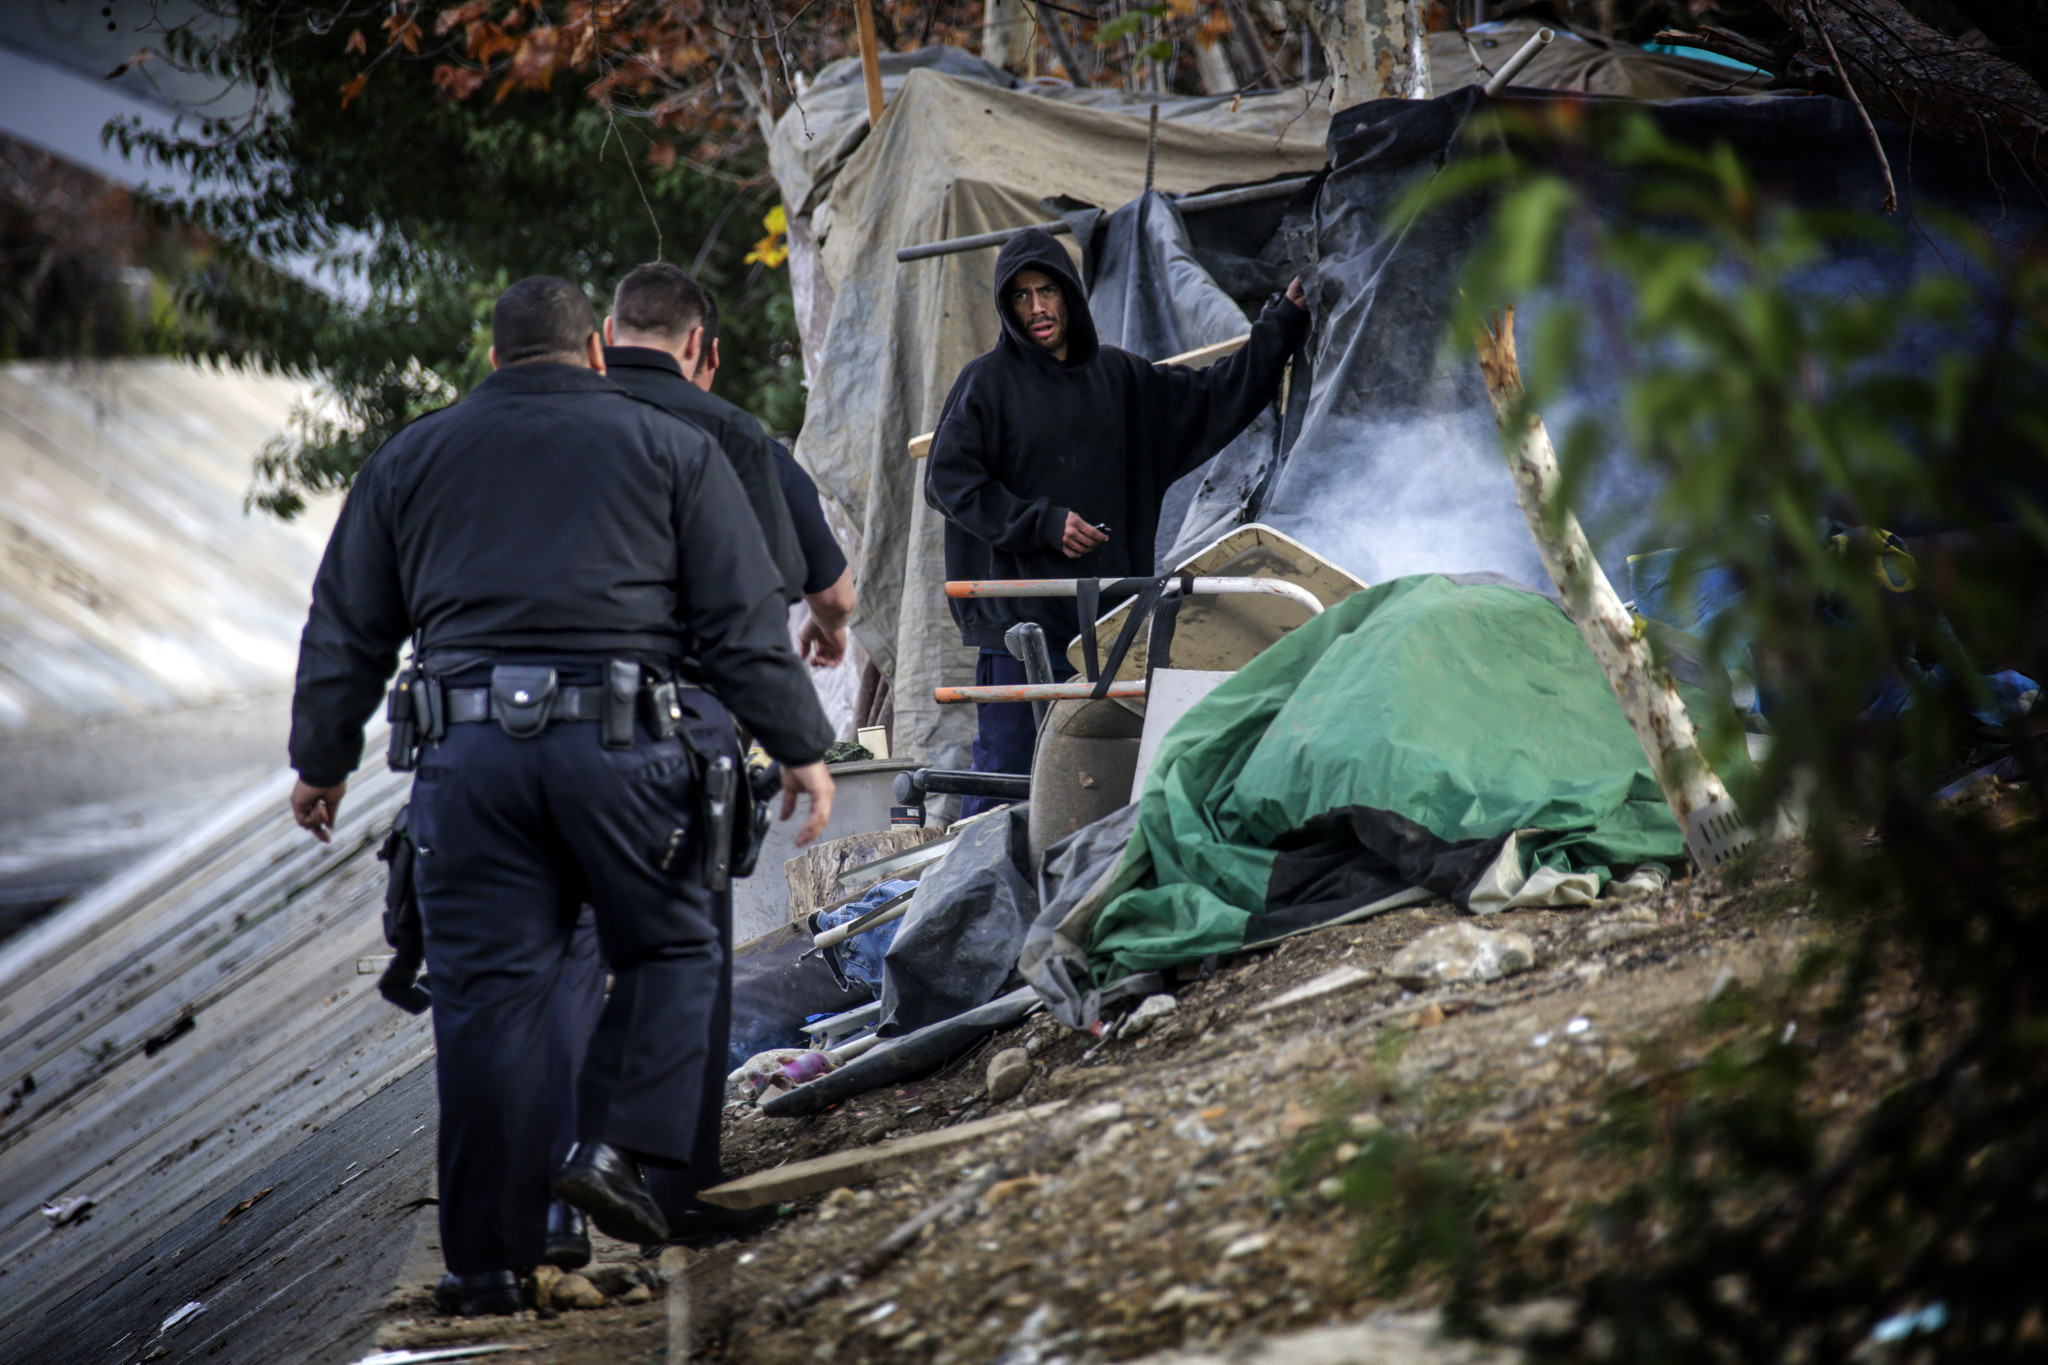 arroyo seco men A recent study found the state has the 10th-highest rate of women killed by men,  body was found outside her home in 2015 in arroyo seco padilla was run over and killed by her boyfriend in .